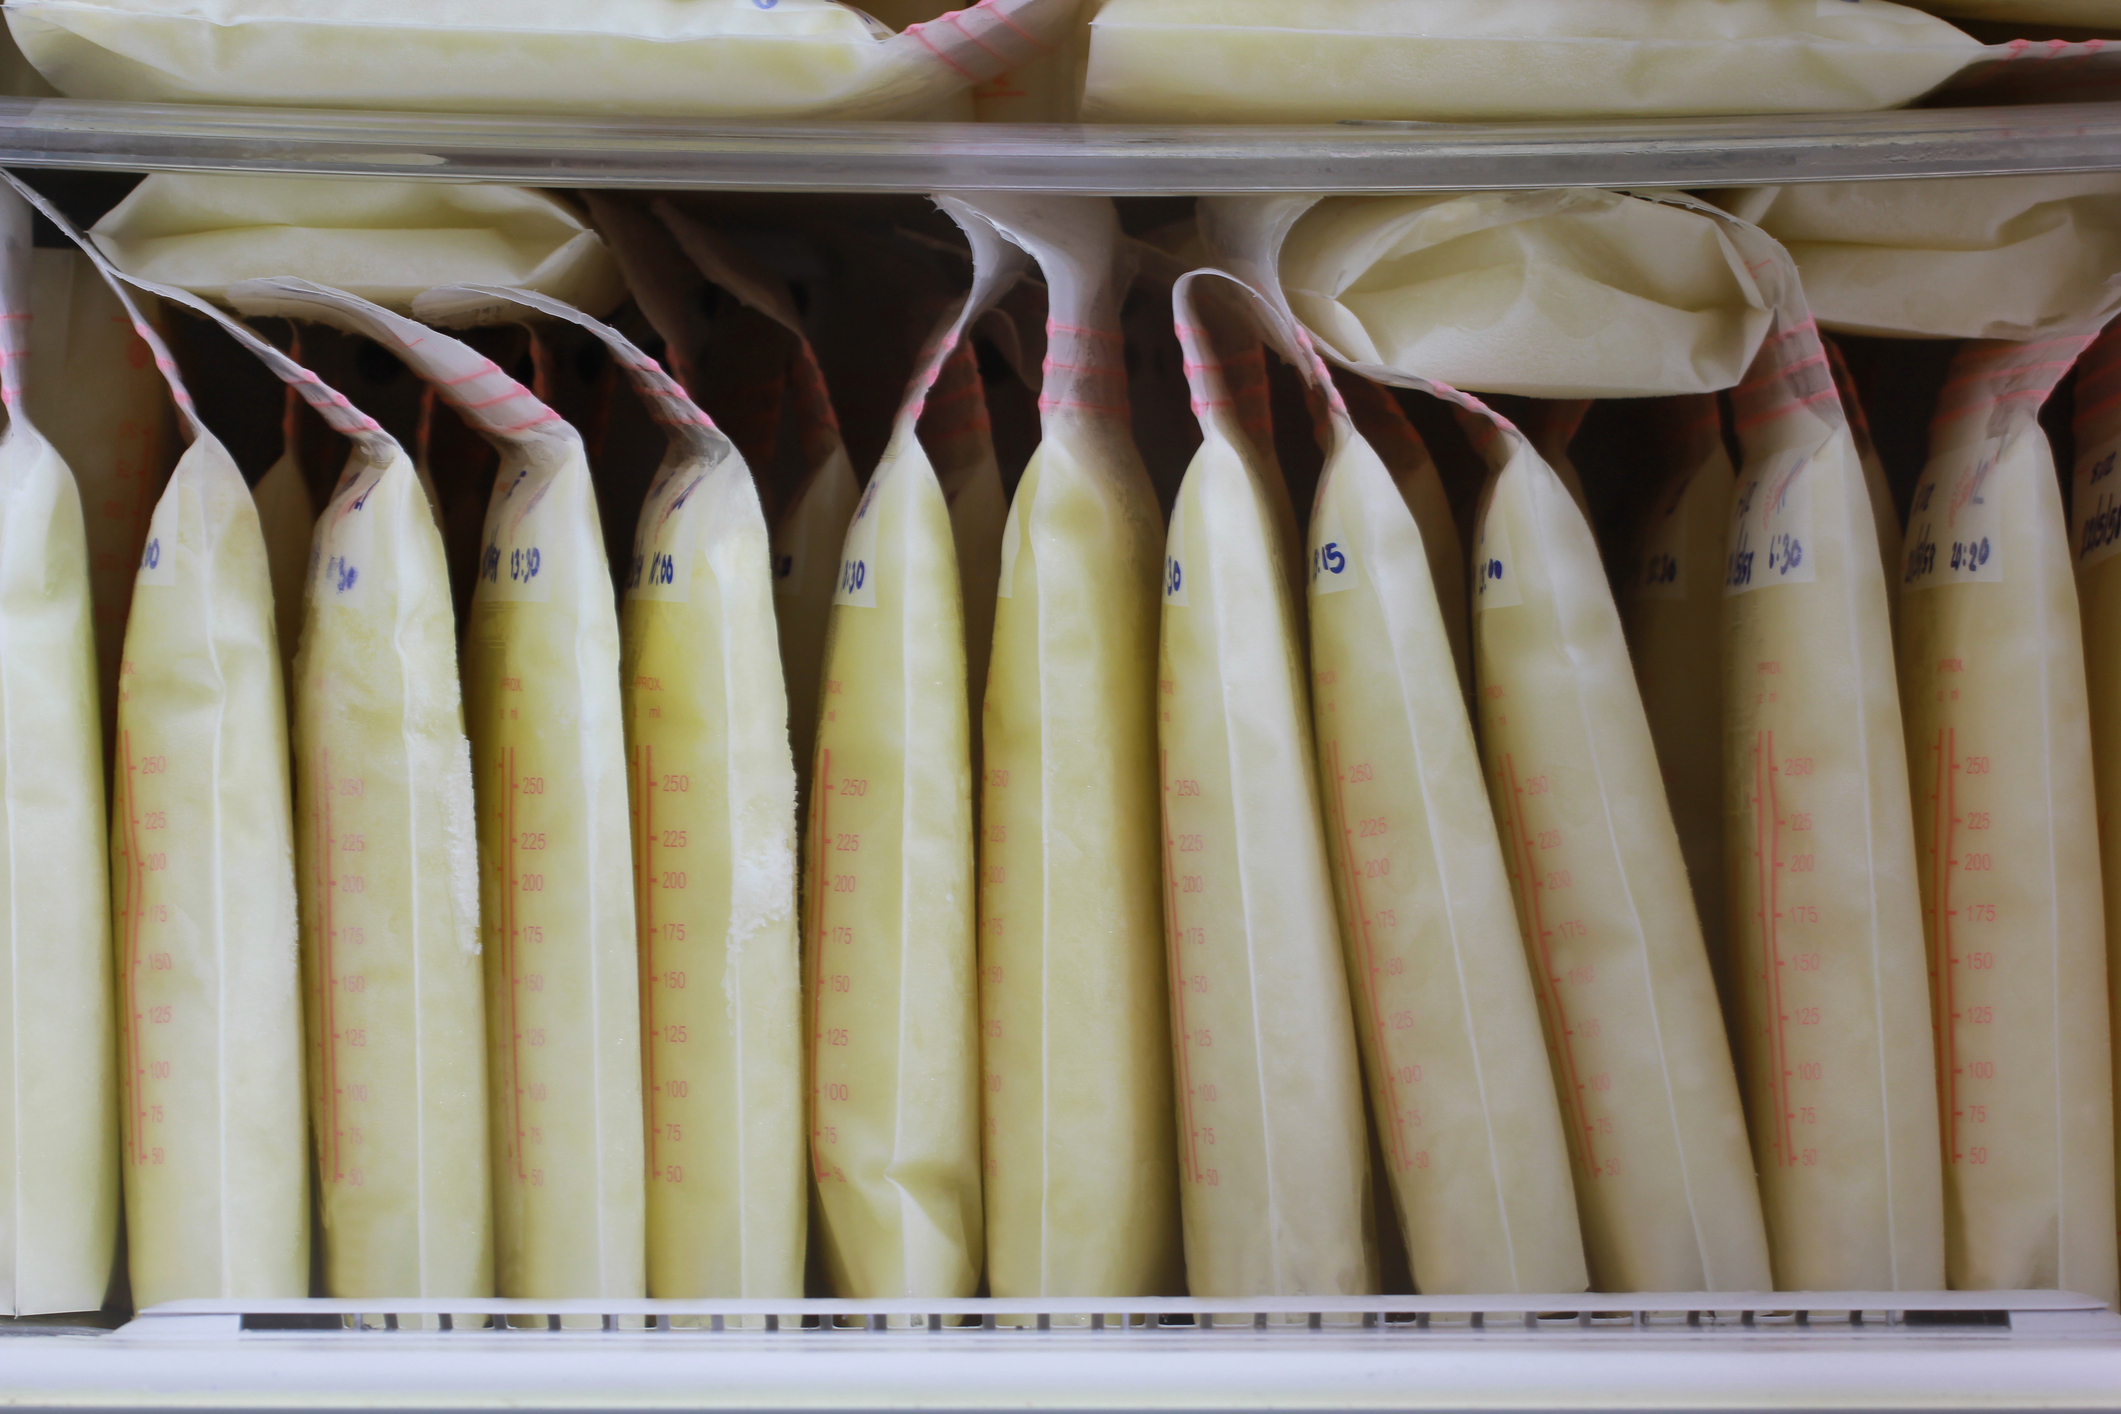 breast milk storage bags for new baby in refrigerator